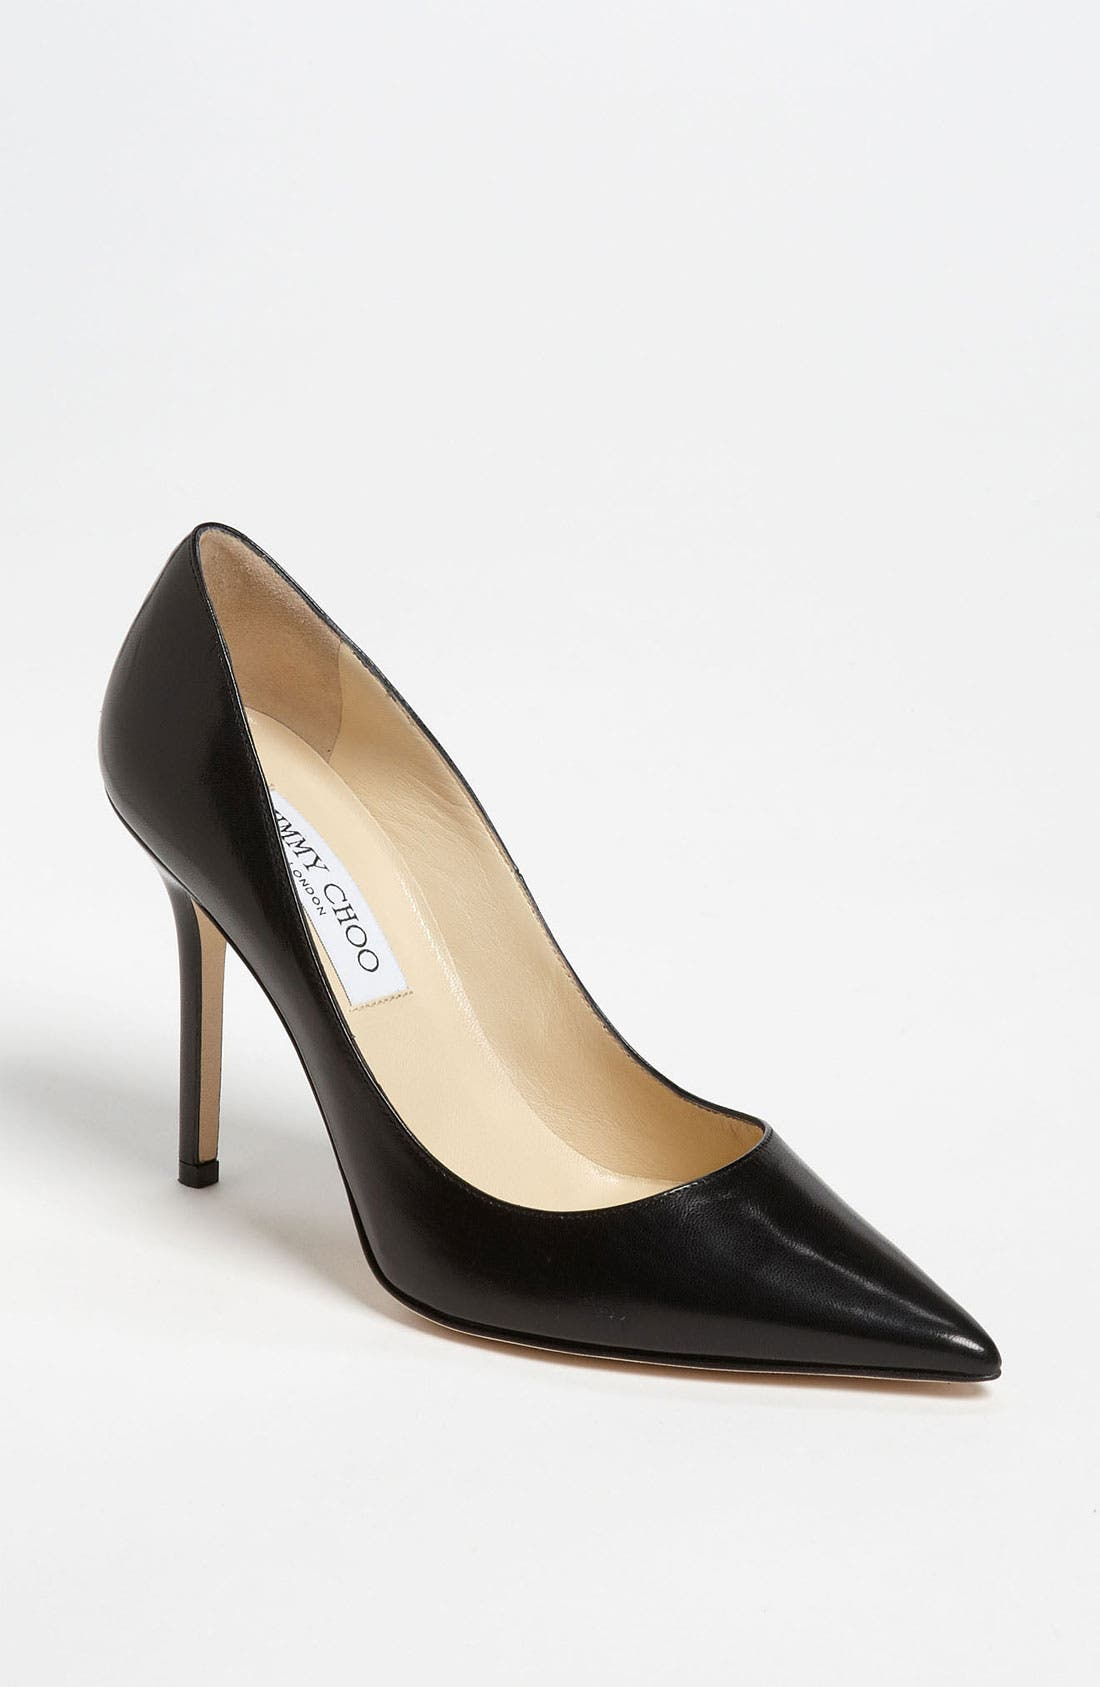 Main Image - Jimmy Choo 'Abel' Pump (Women) (Nordstrom Exclusive)